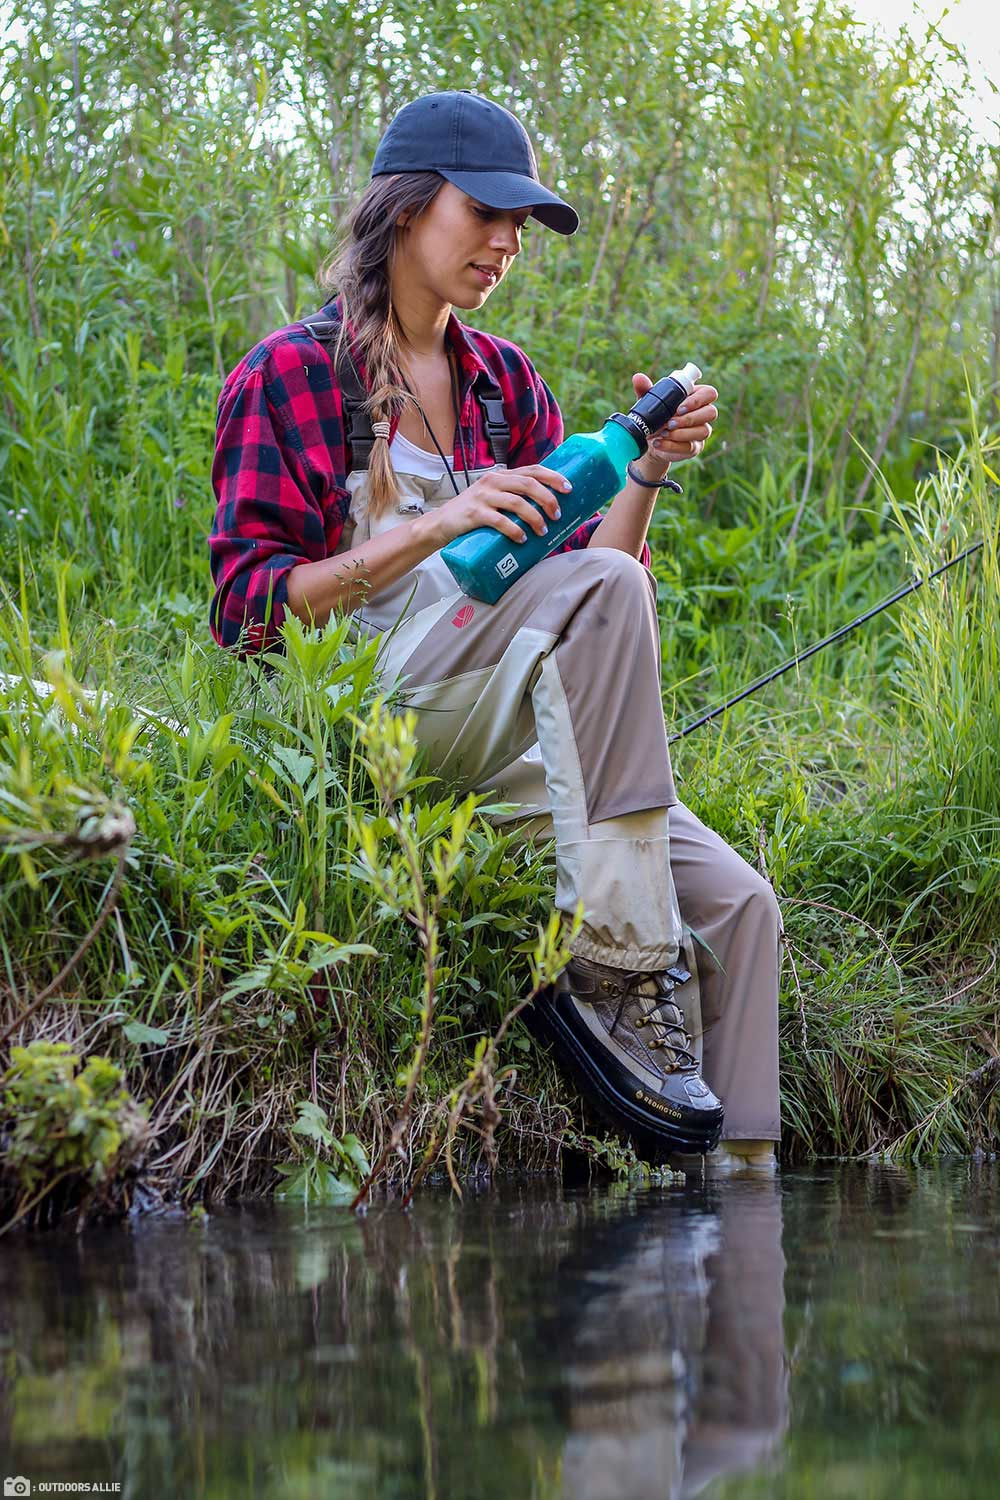 Outdoors Allie uses her Sawyer Select S1 Filter while Fishing